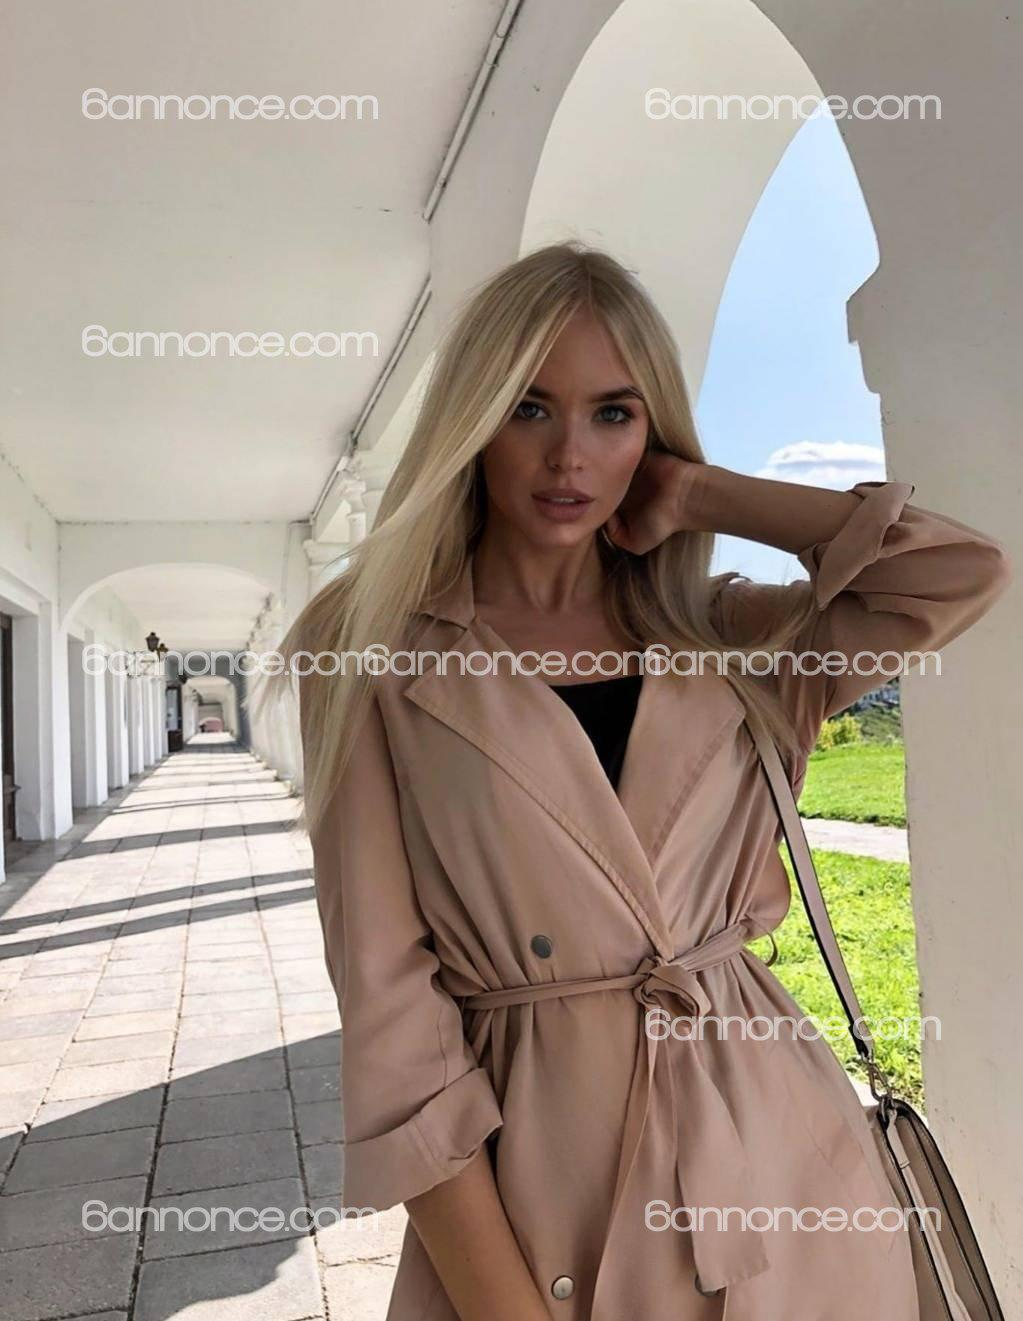 Viktoria from 6annonce